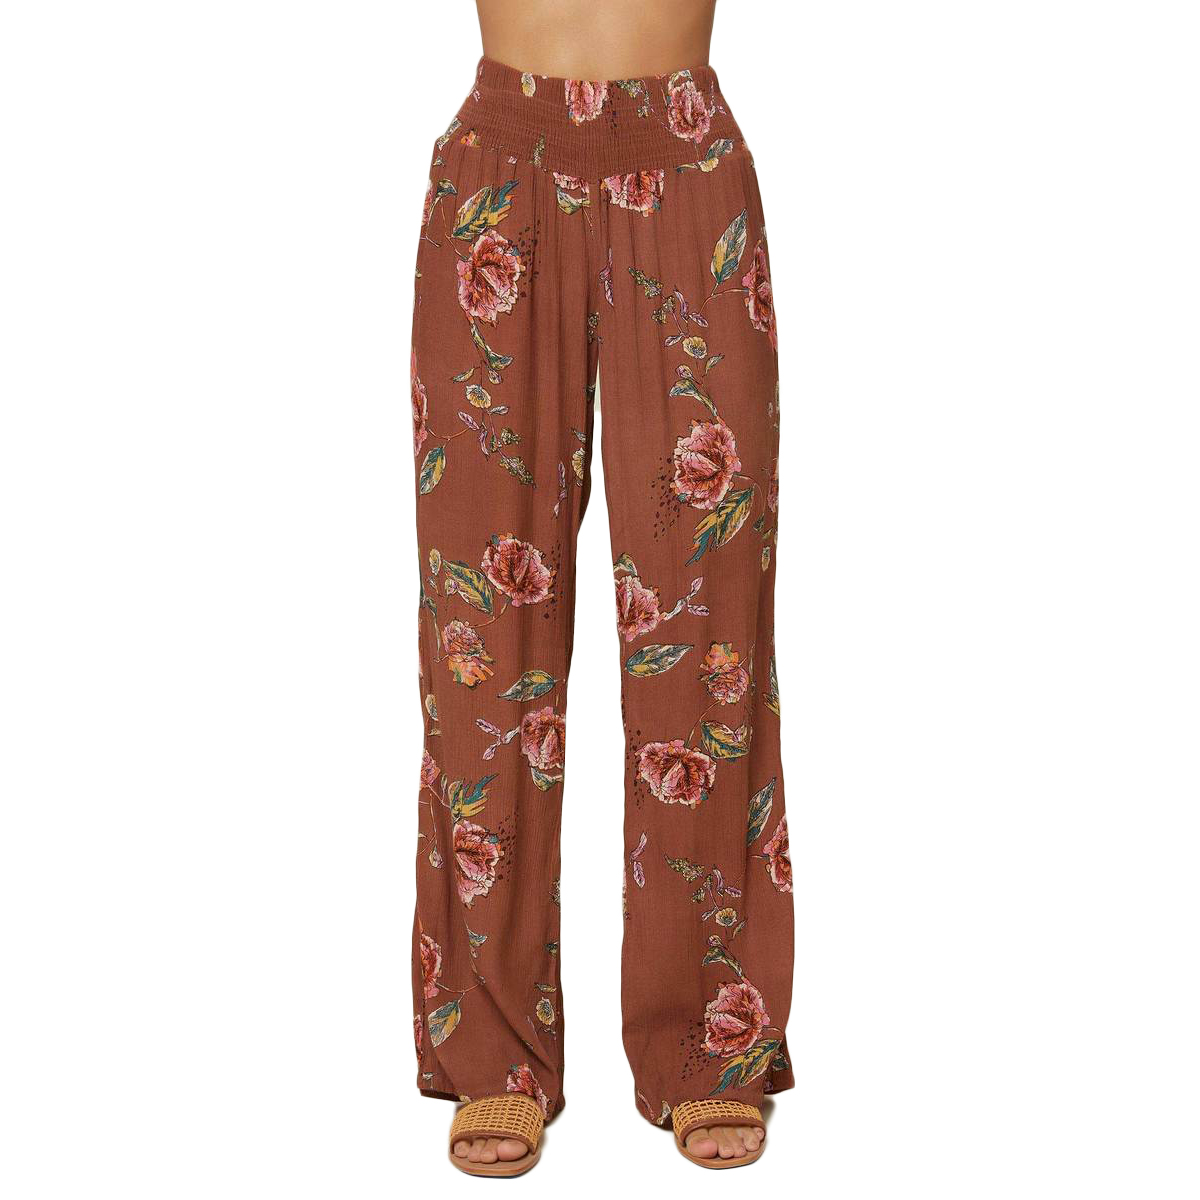 O'neill Women's Johnny Floral Pants - Brown, L